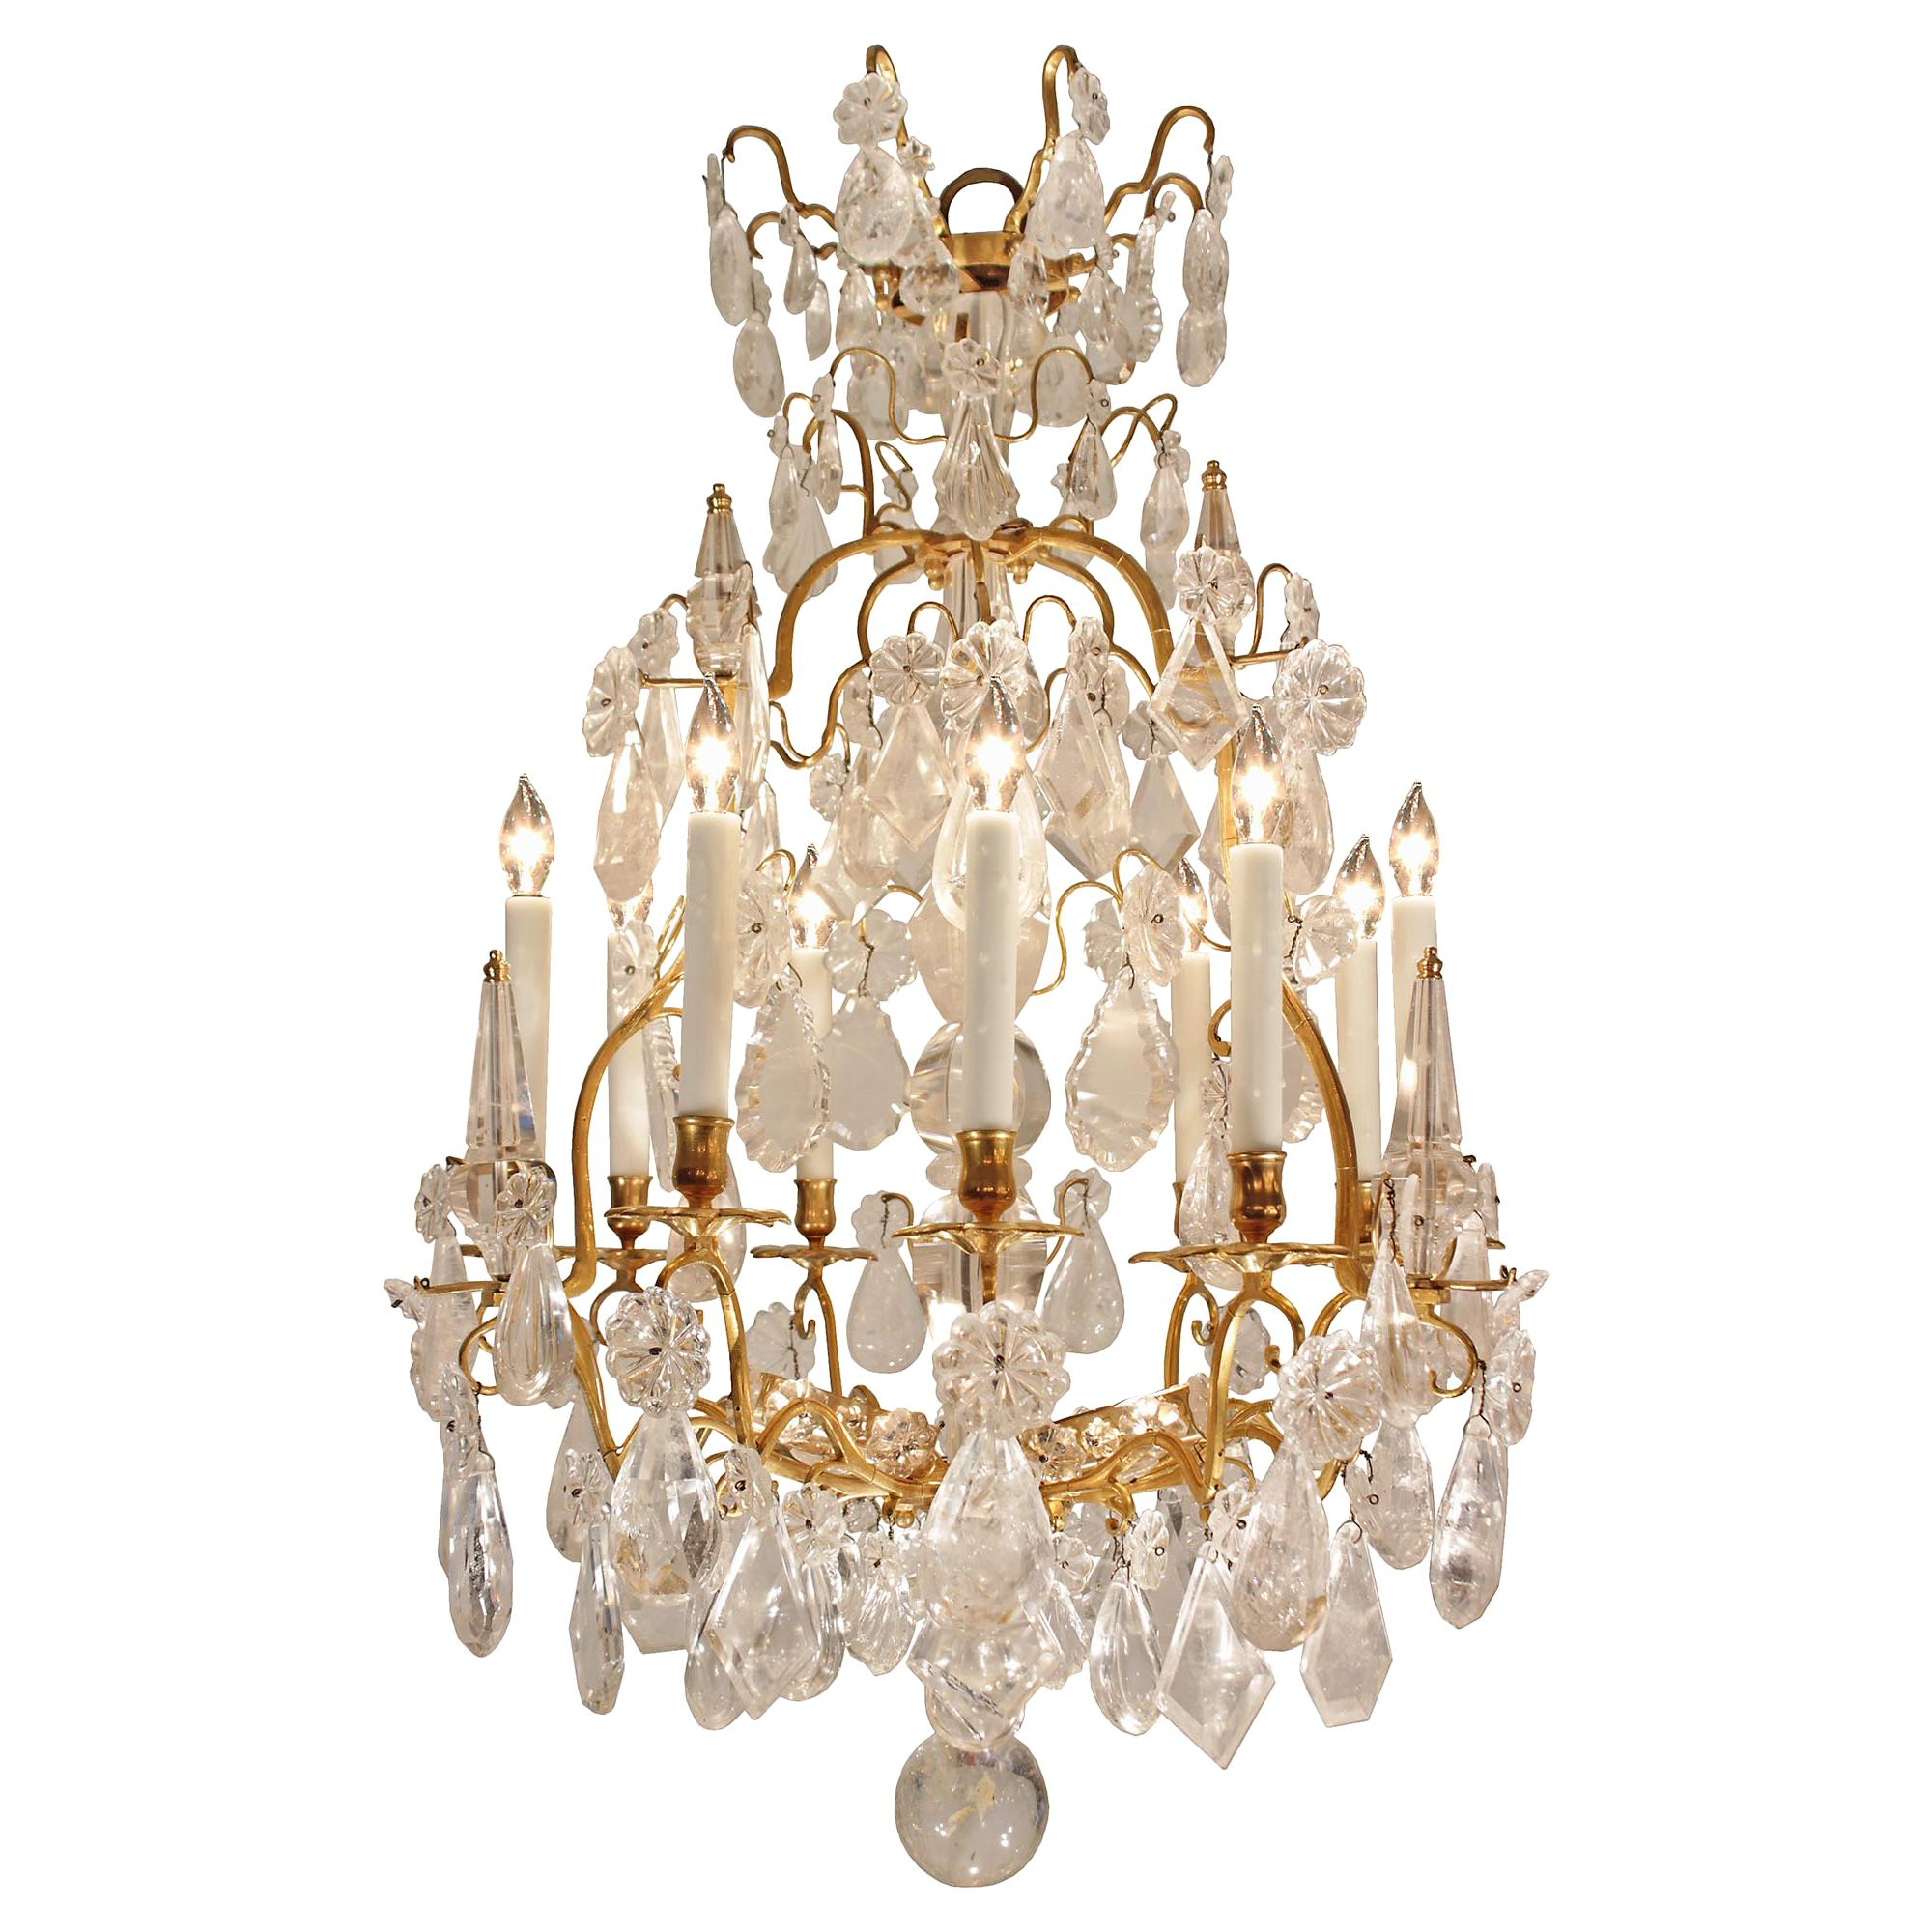 French Mid-18th Century Louis XV Period Rock Crystal and Ormolu Chandelier